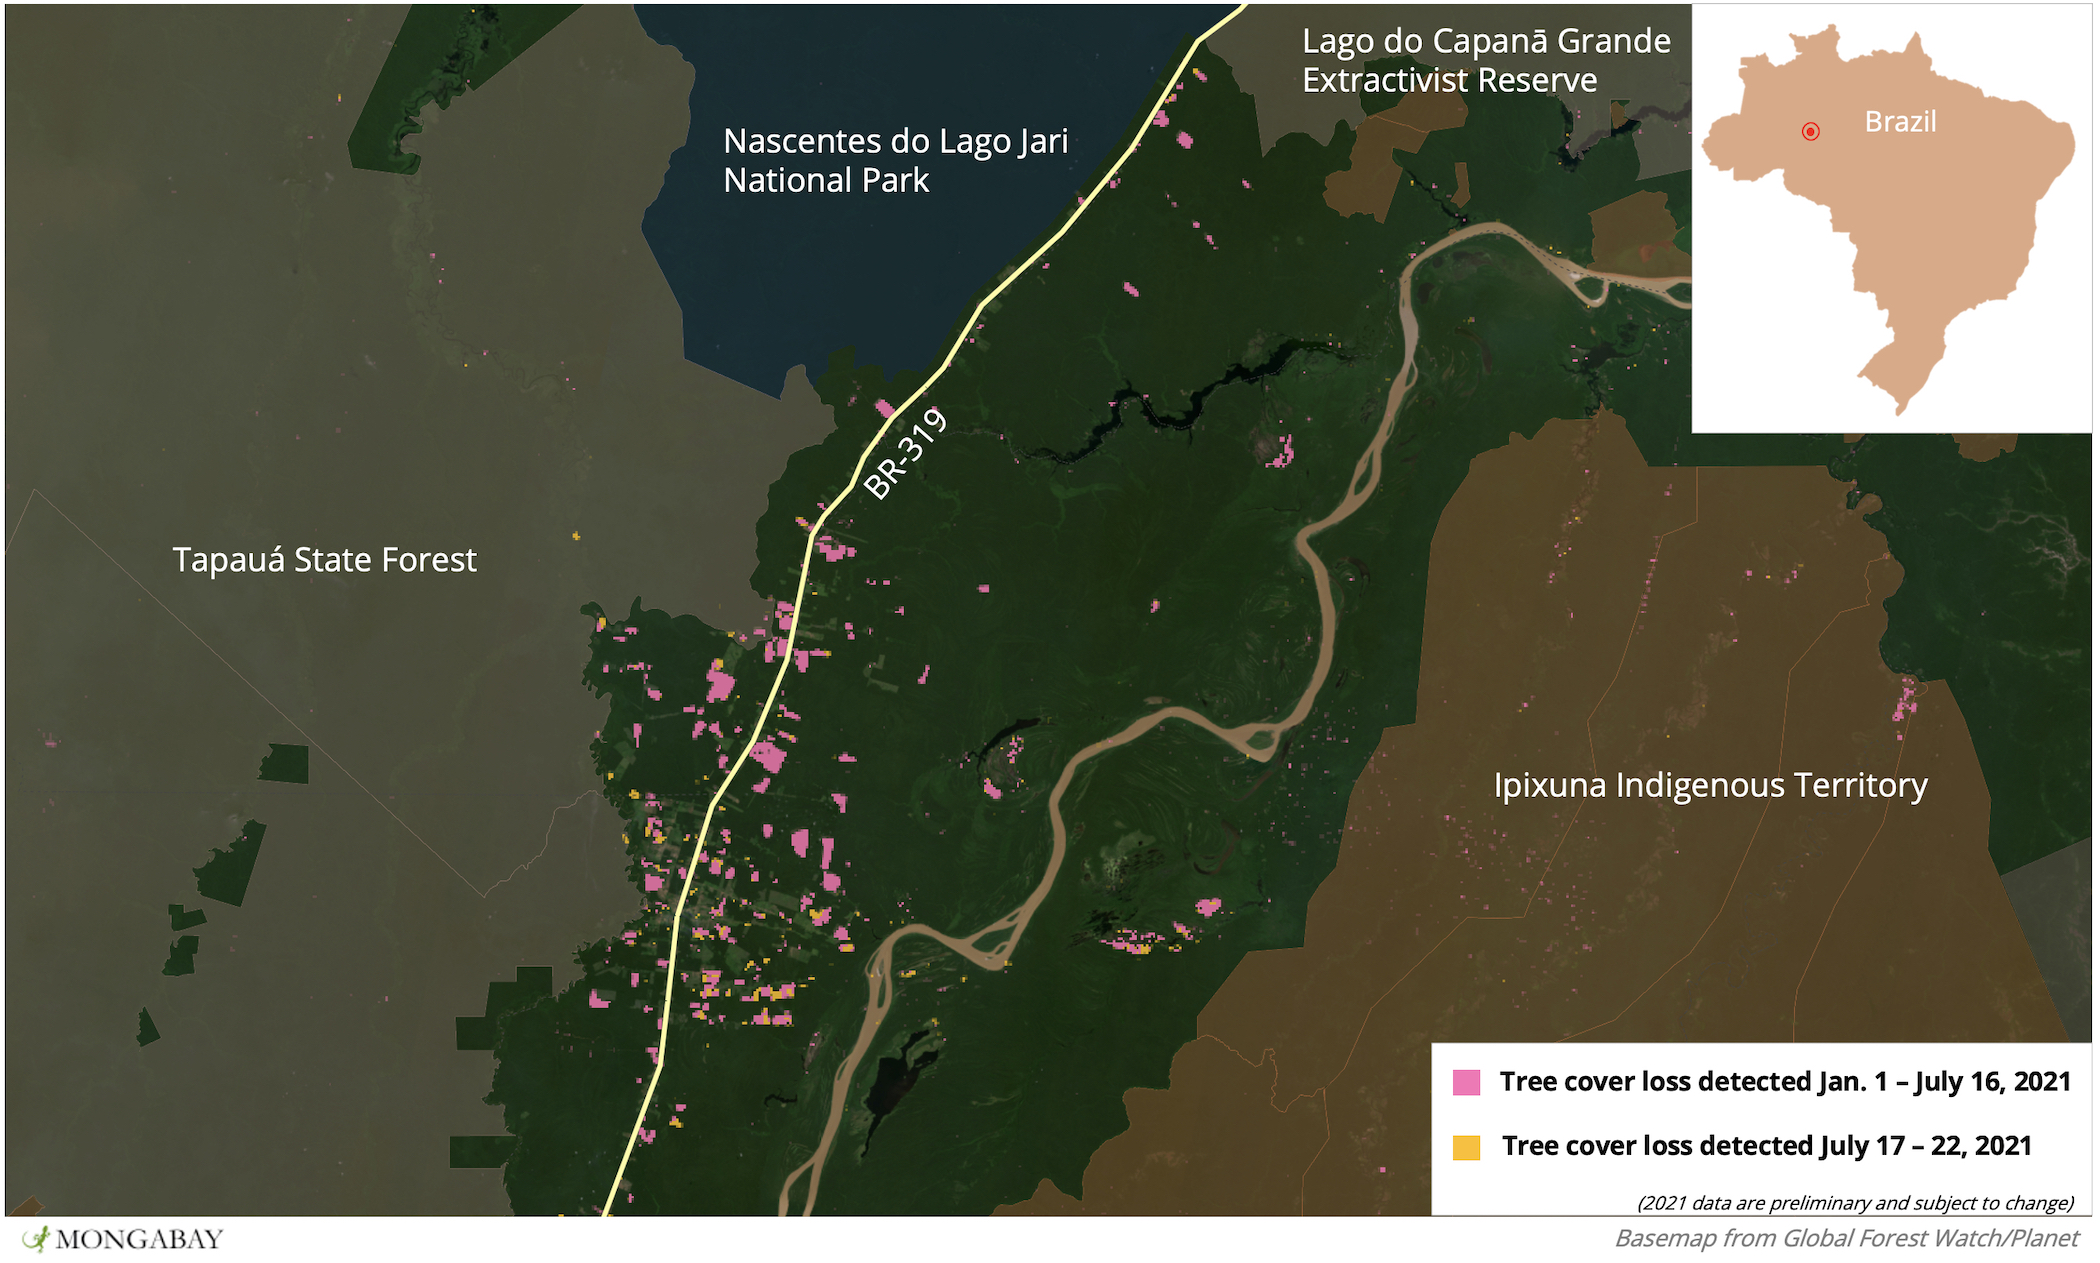 Satellite data from the University of Maryland show a proliferation of deforestation along the southern portion of BR-319 so far in 2021.